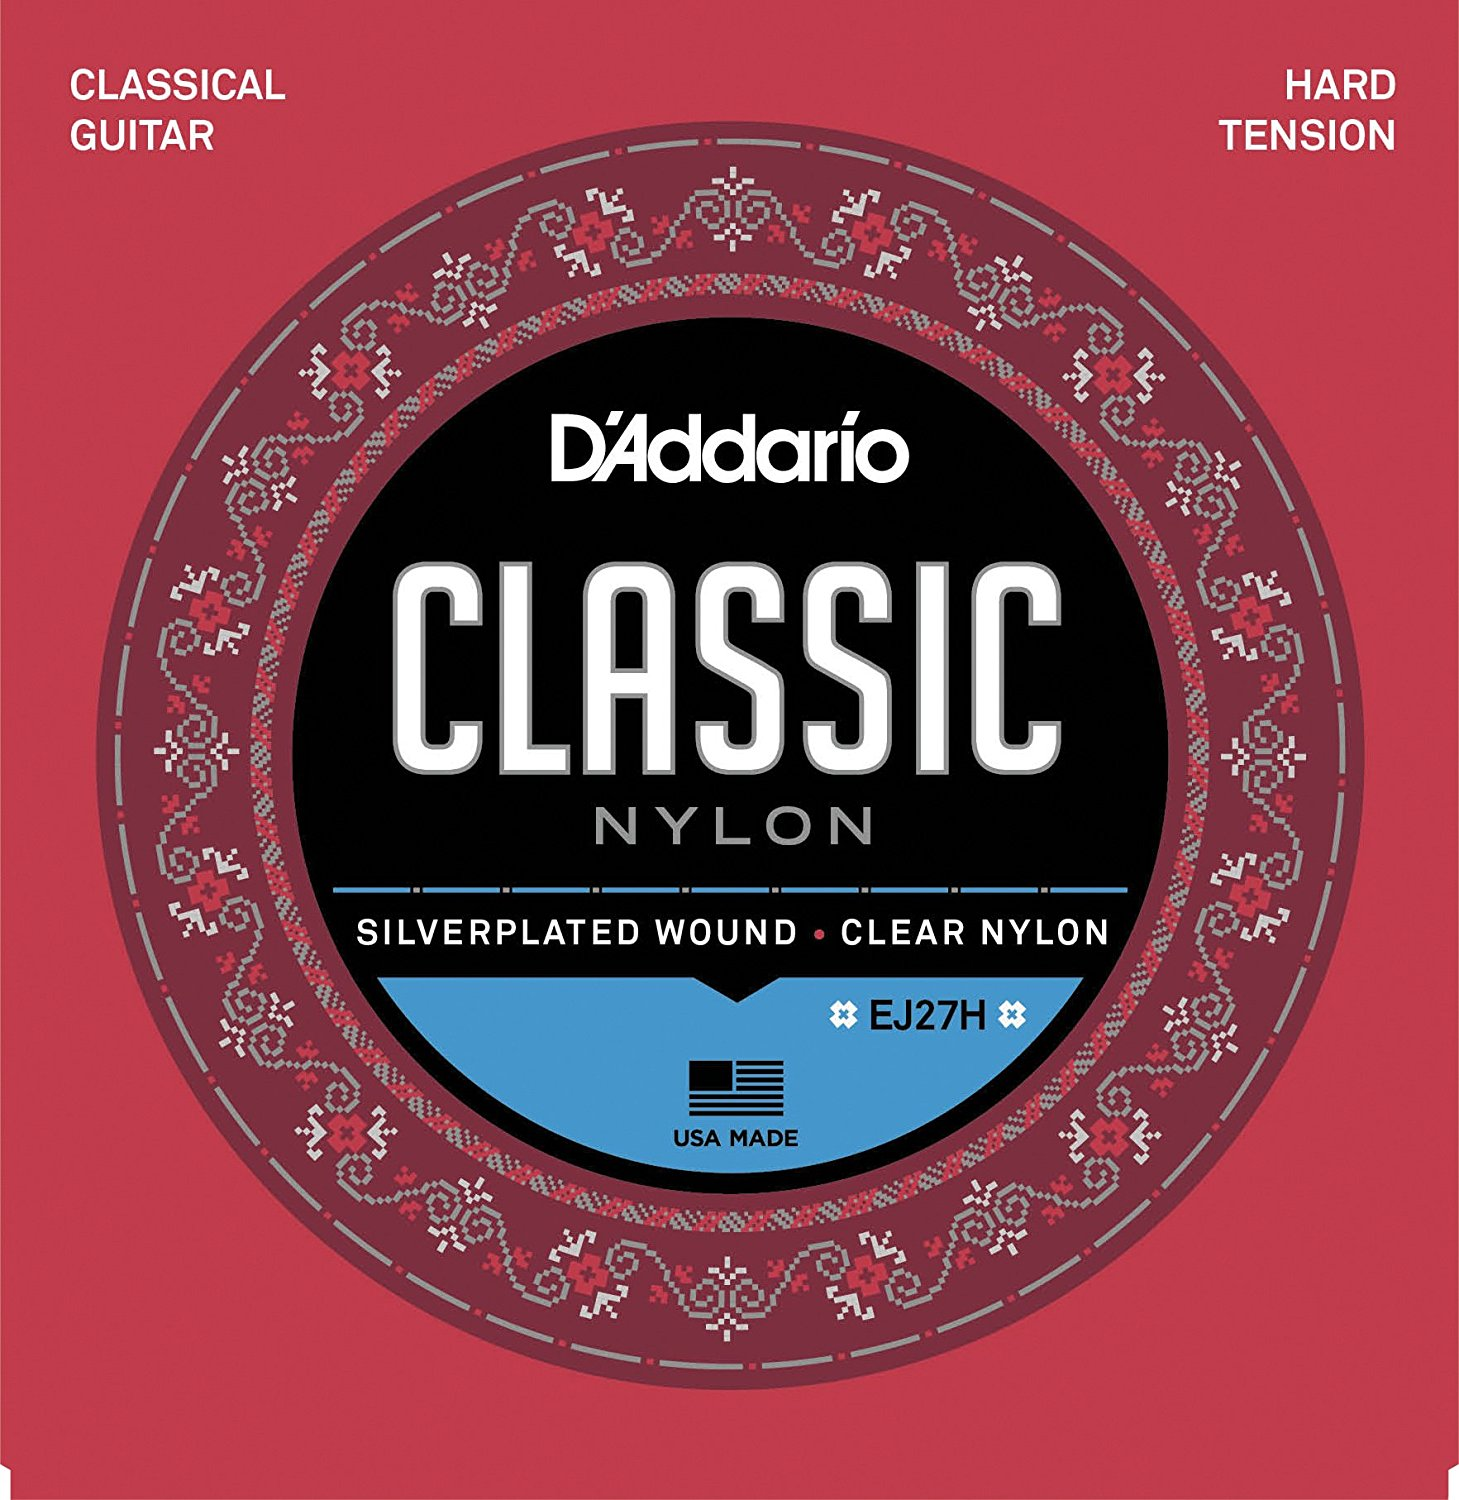 D'Addario EJ27H / EJ27N Student Nylon Classical Guitar Strings, Hard/Normal Tension savarez 500arh classical corum standard tension set 024 042 classical guitar string